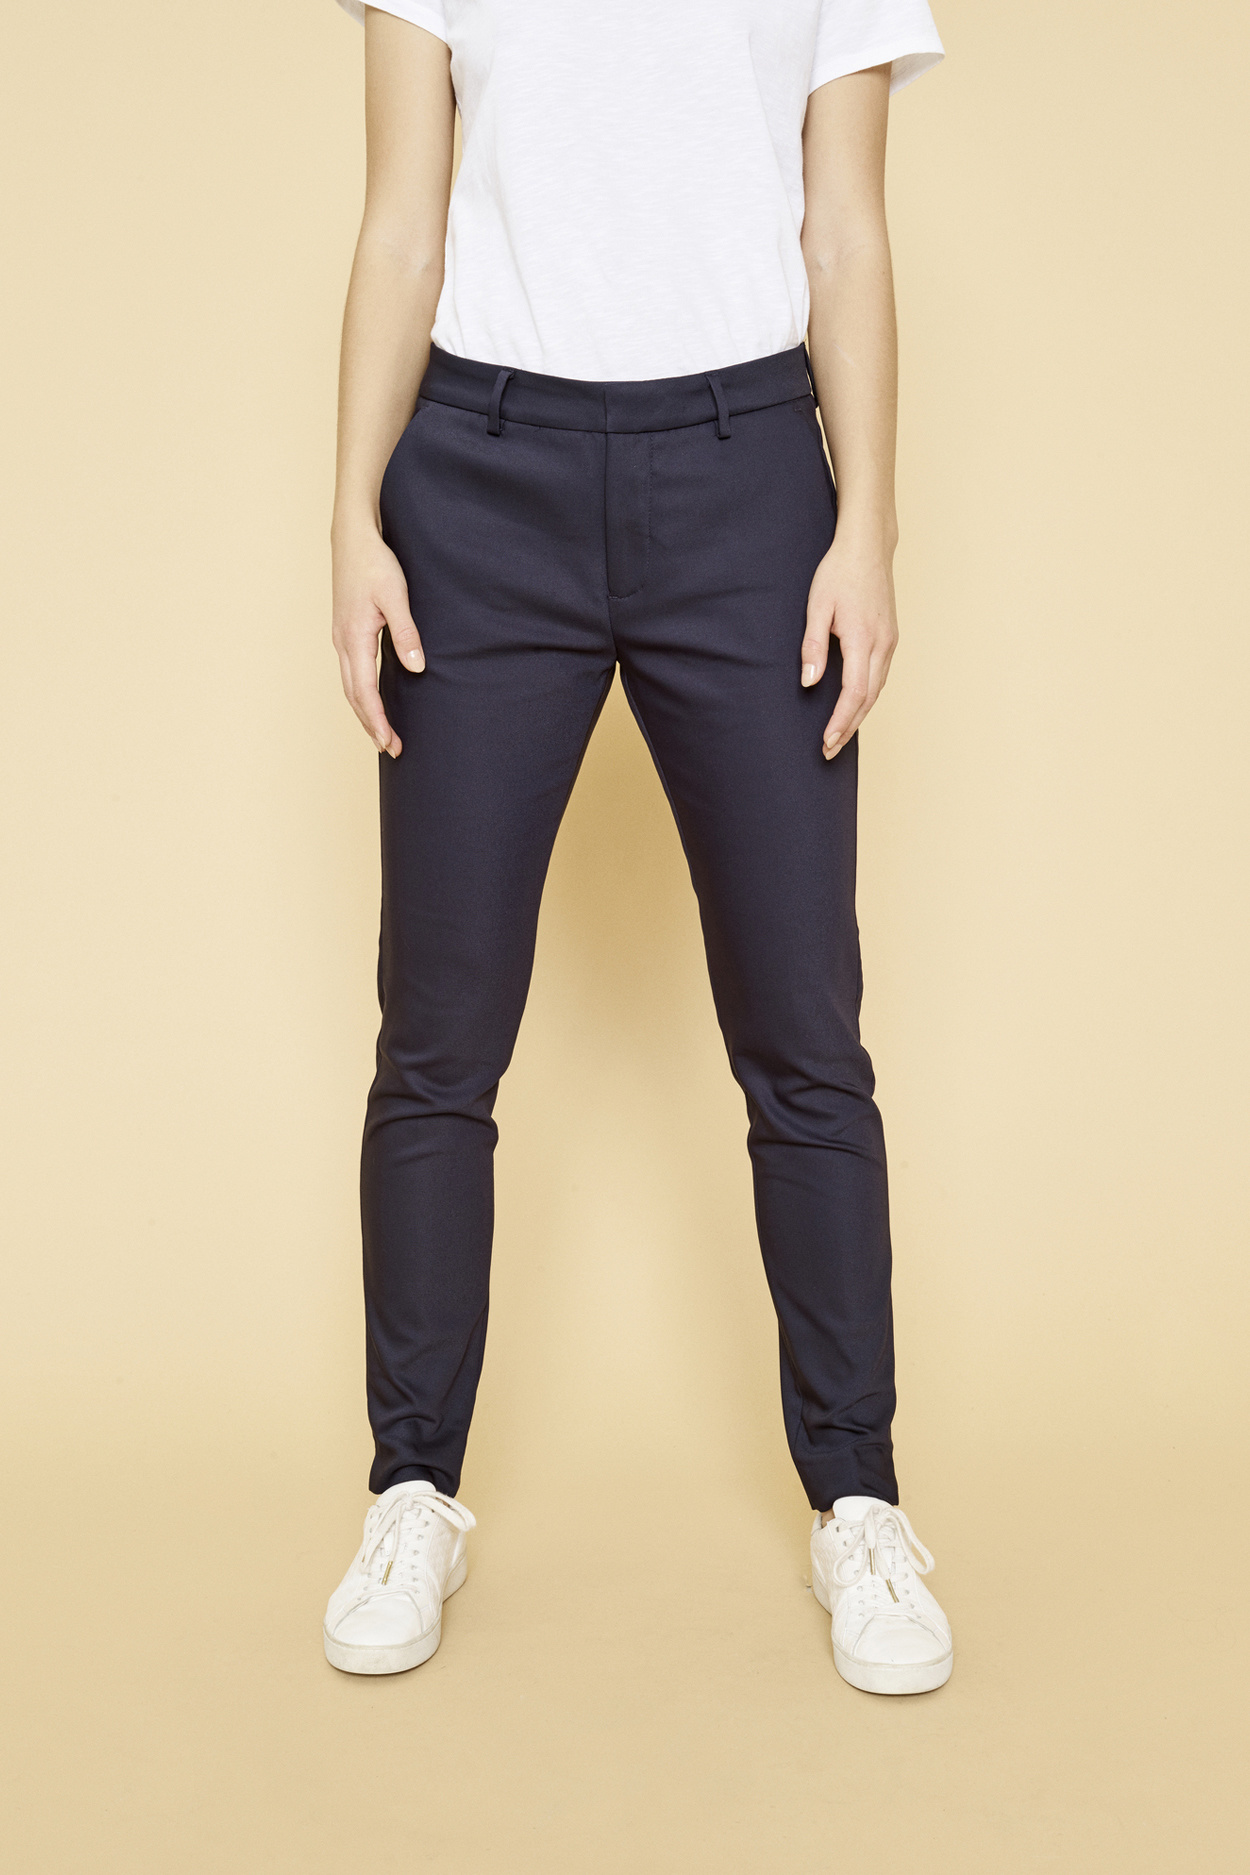 Abbey Night Pant Sustainable - Navy-6